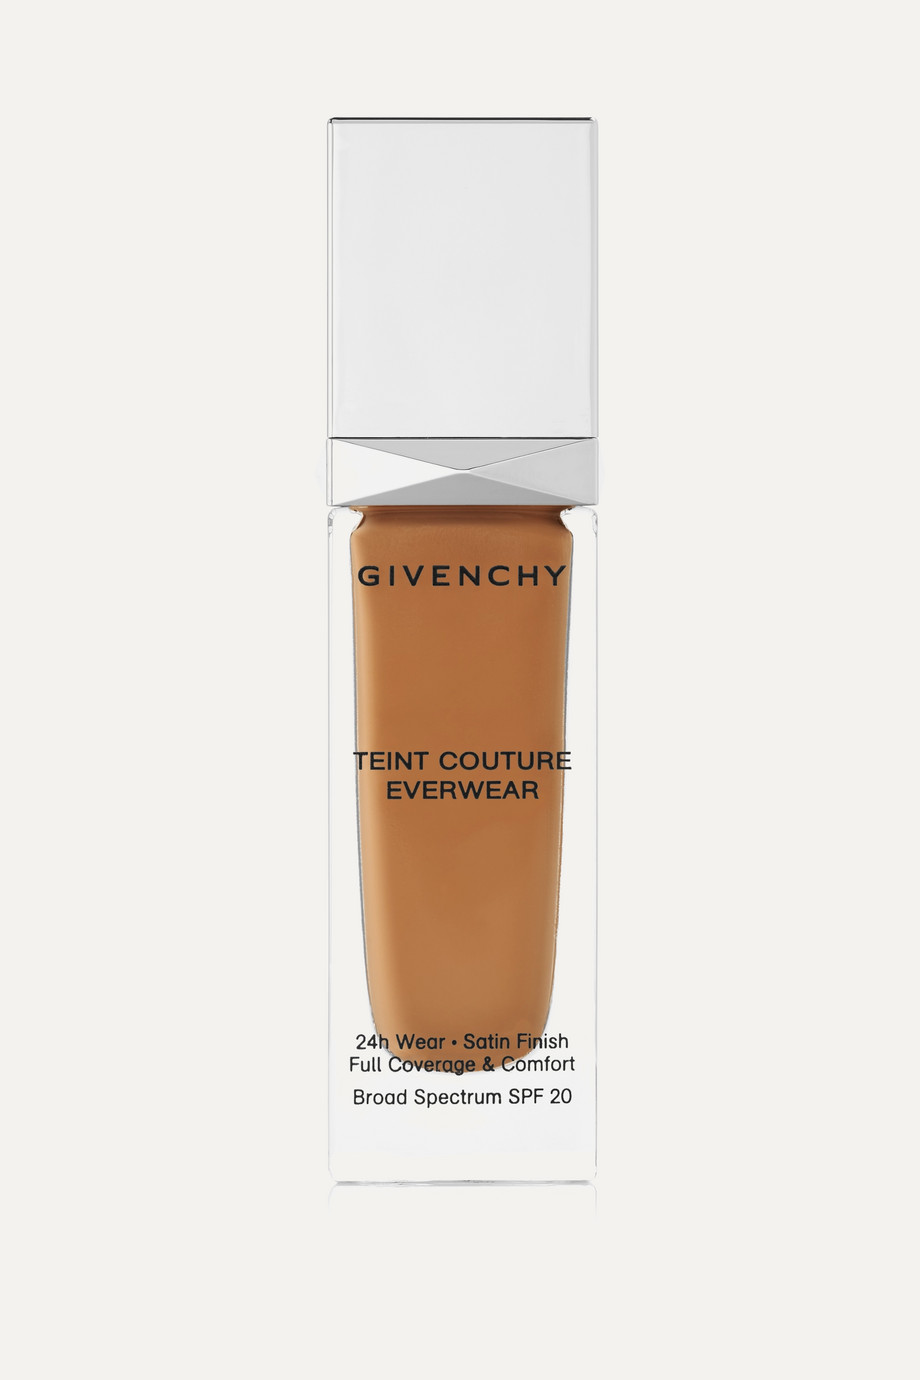 Givenchy Beauty Teint Couture Everwear Foundation SPF20 - P315, 30ml